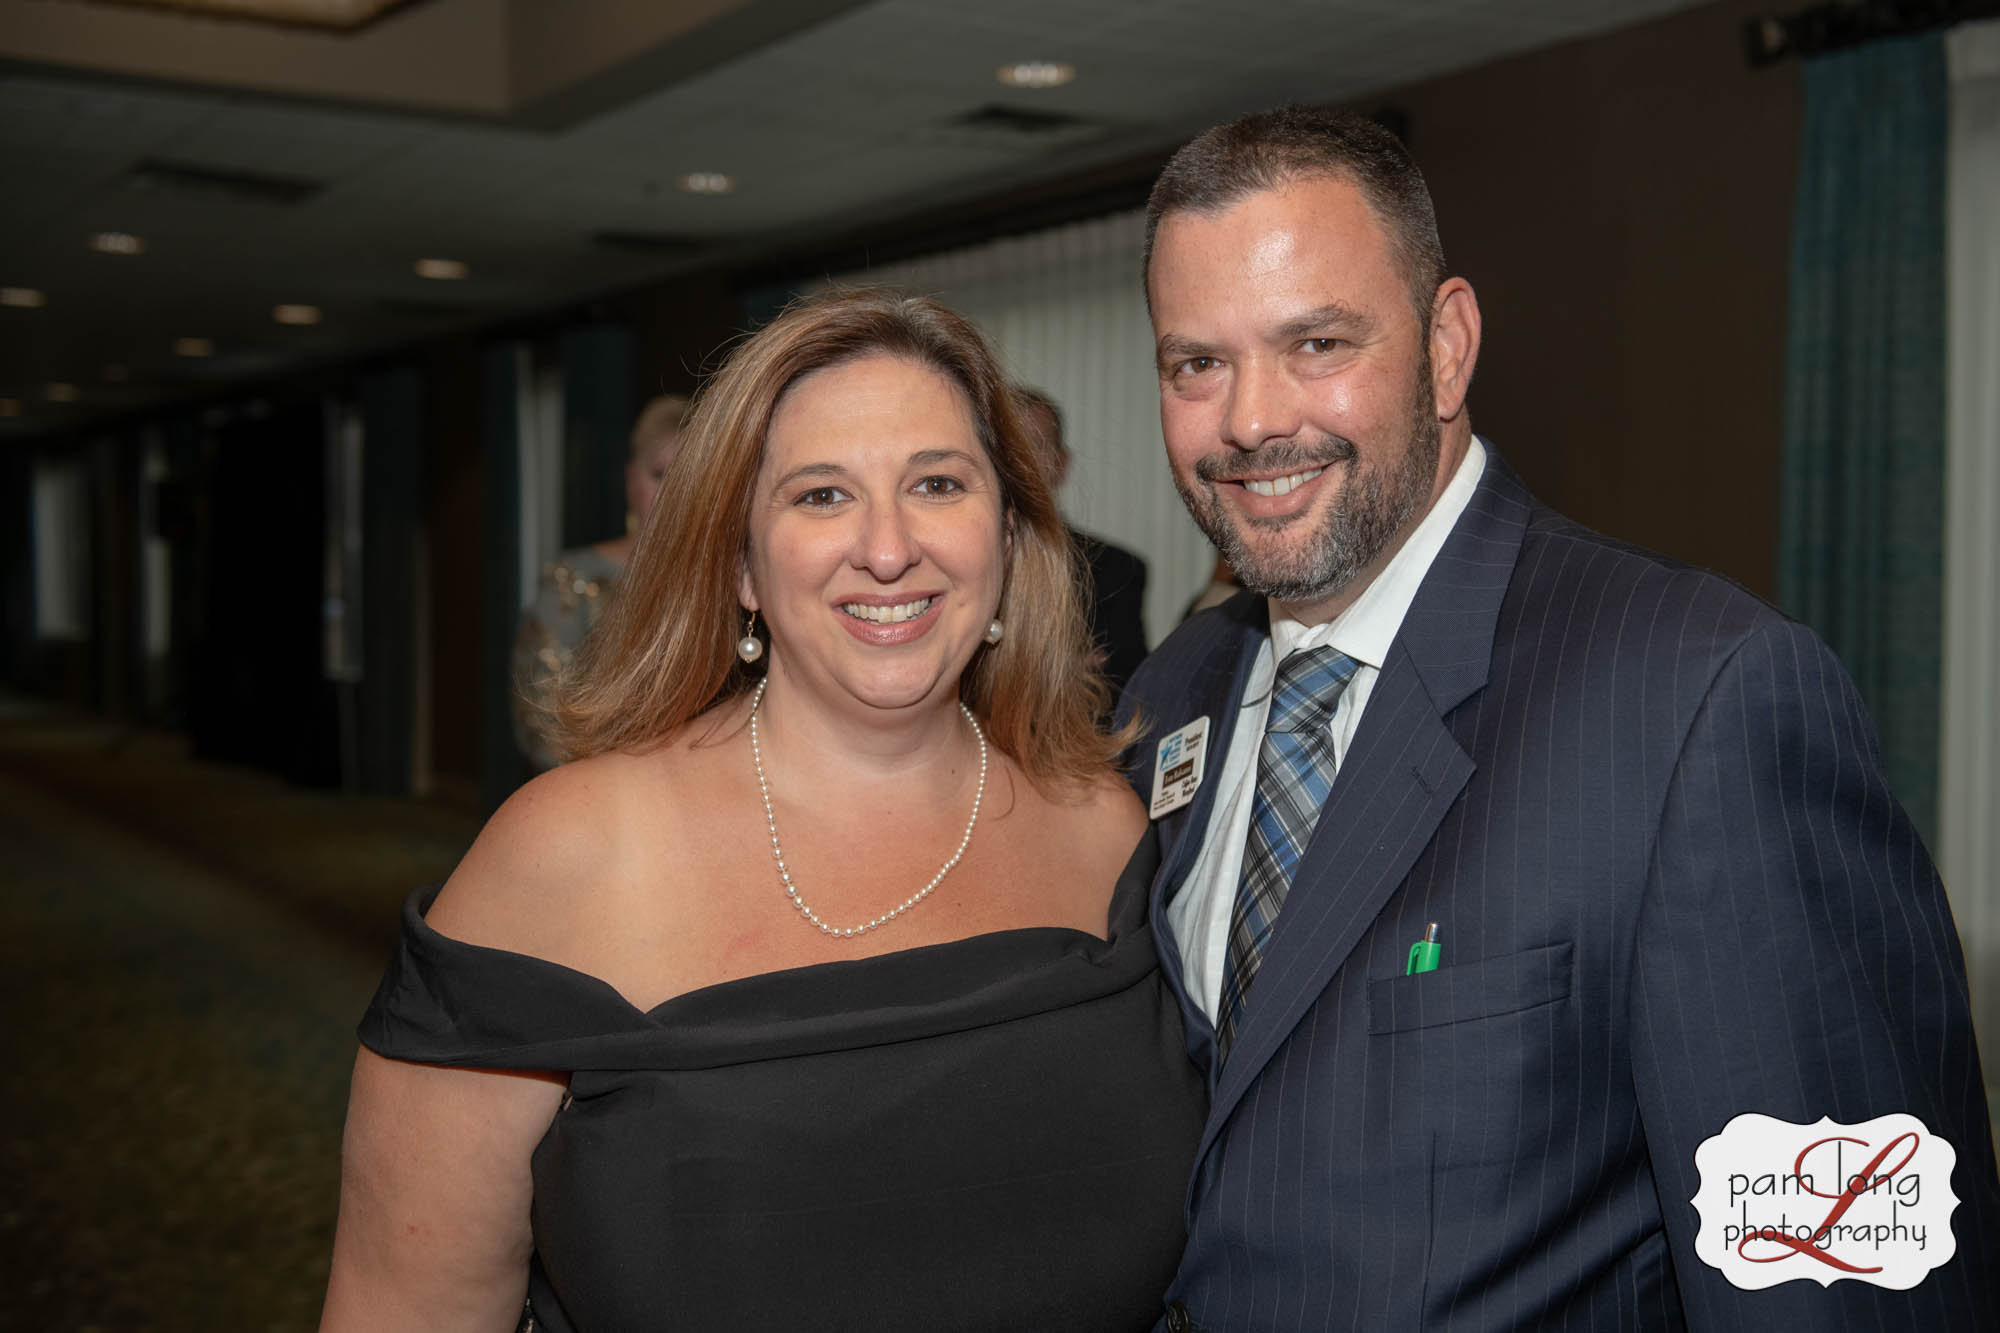 Pam-Long-Photography-HoCo-Chamber-20191005-39